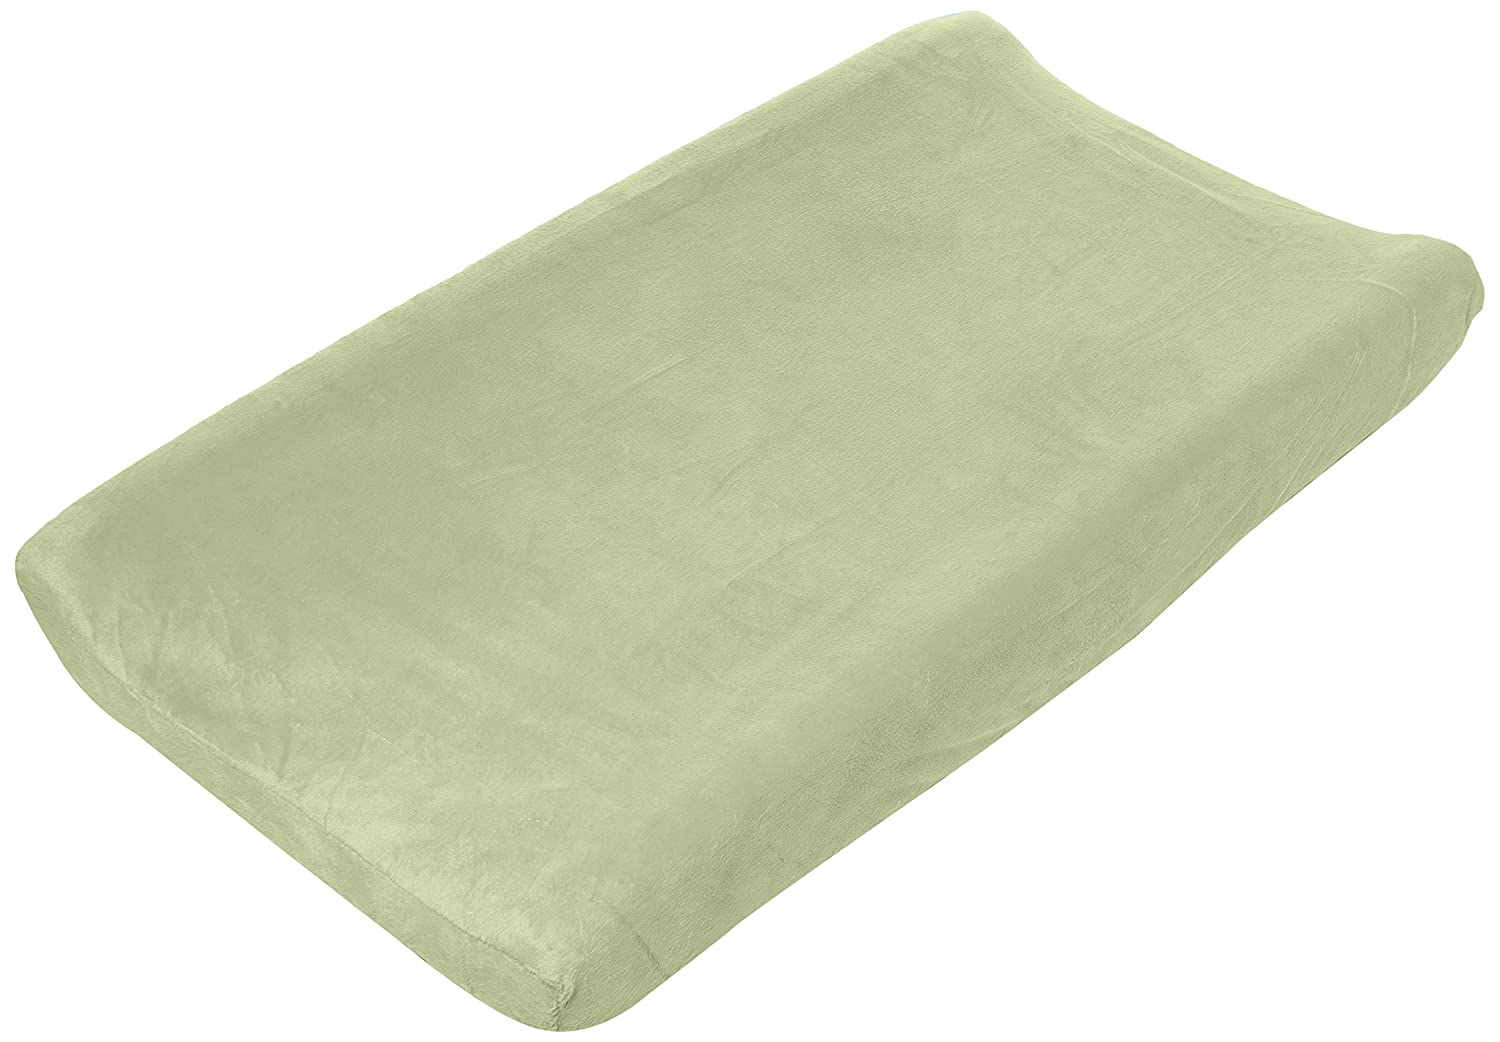 Summer Infant Ultra Plush Changing Pad Covers-Sage 92330